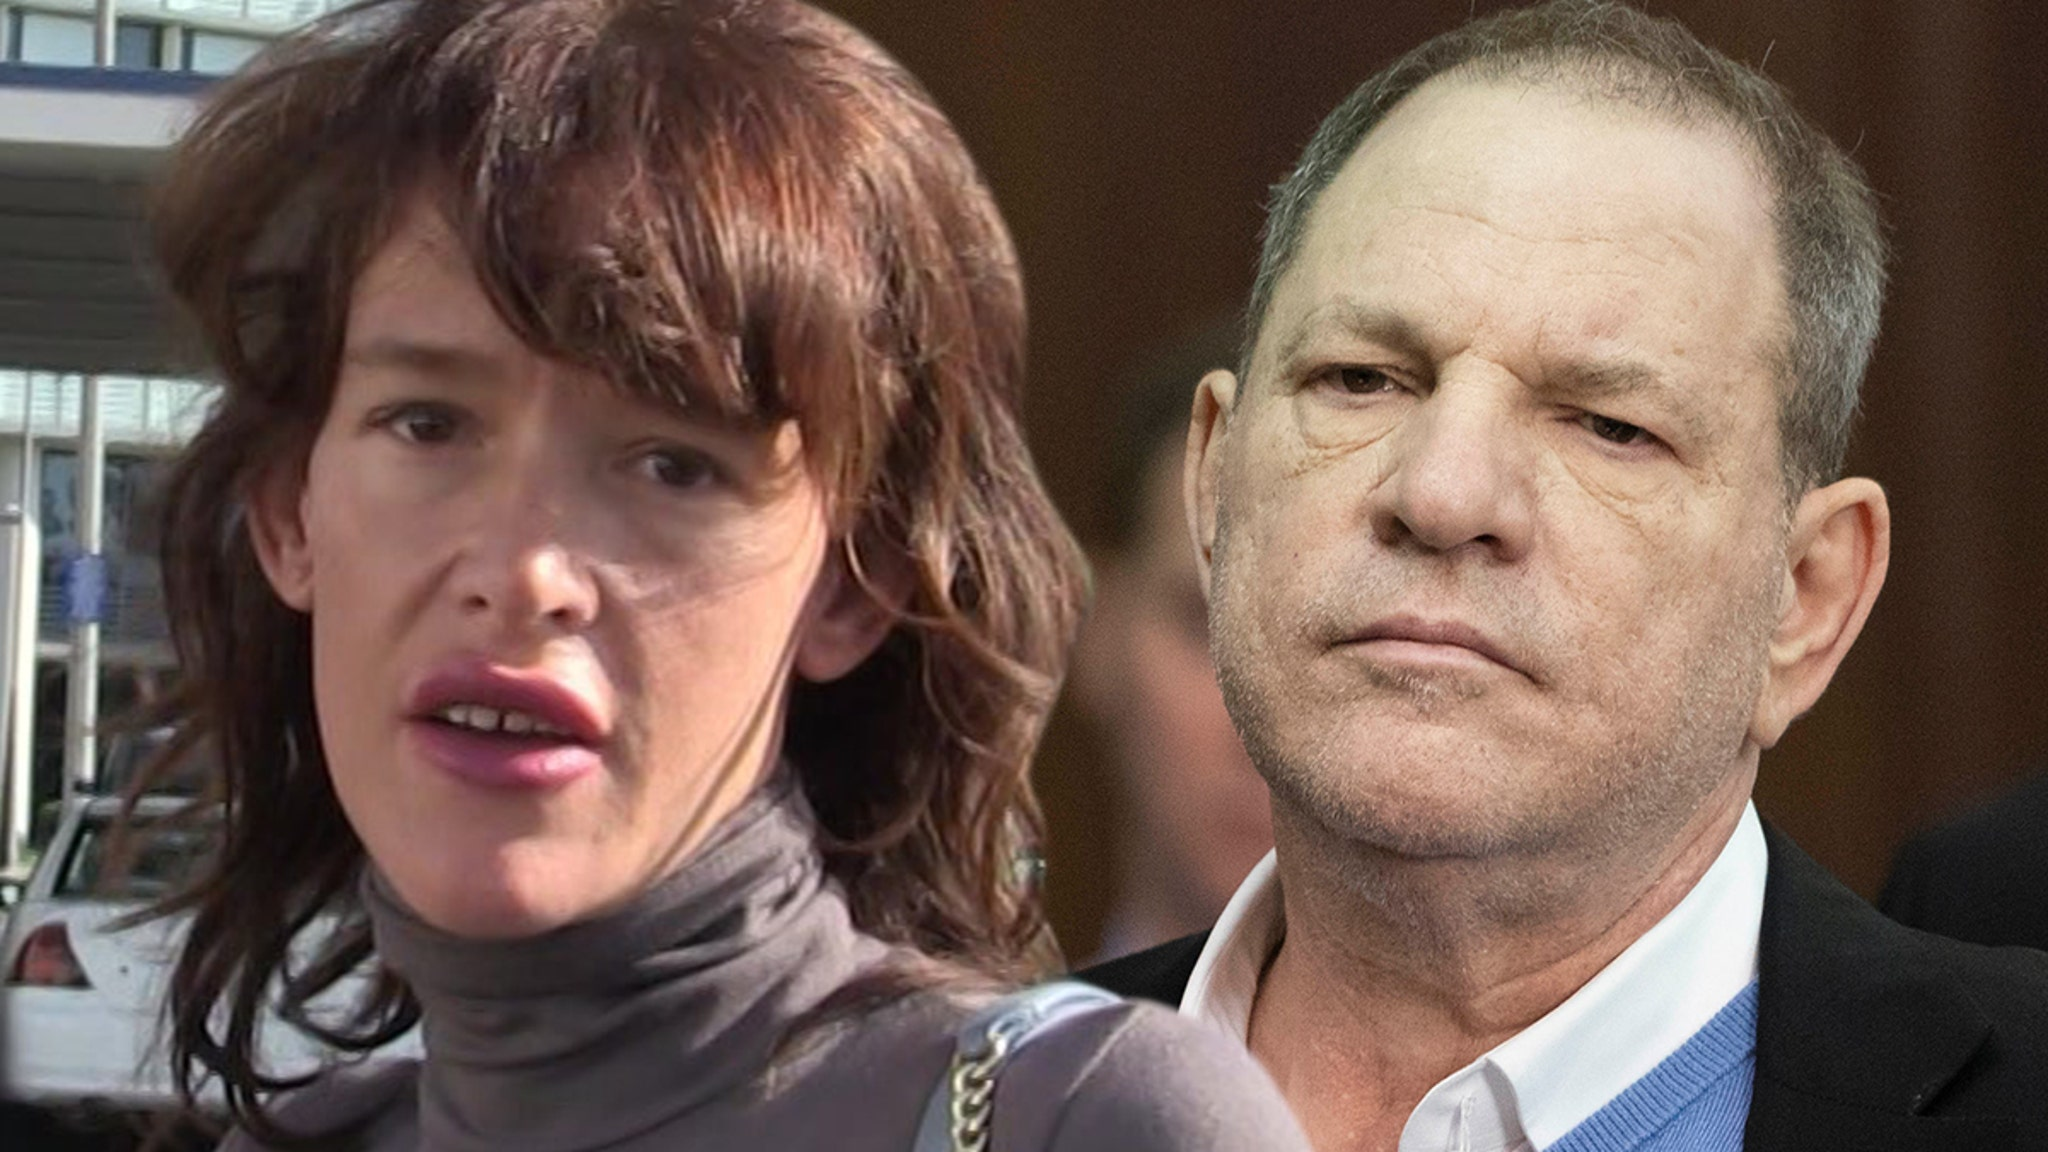 Paz de la Huerta Demands $2 Million from Harvey Weinstein or Else